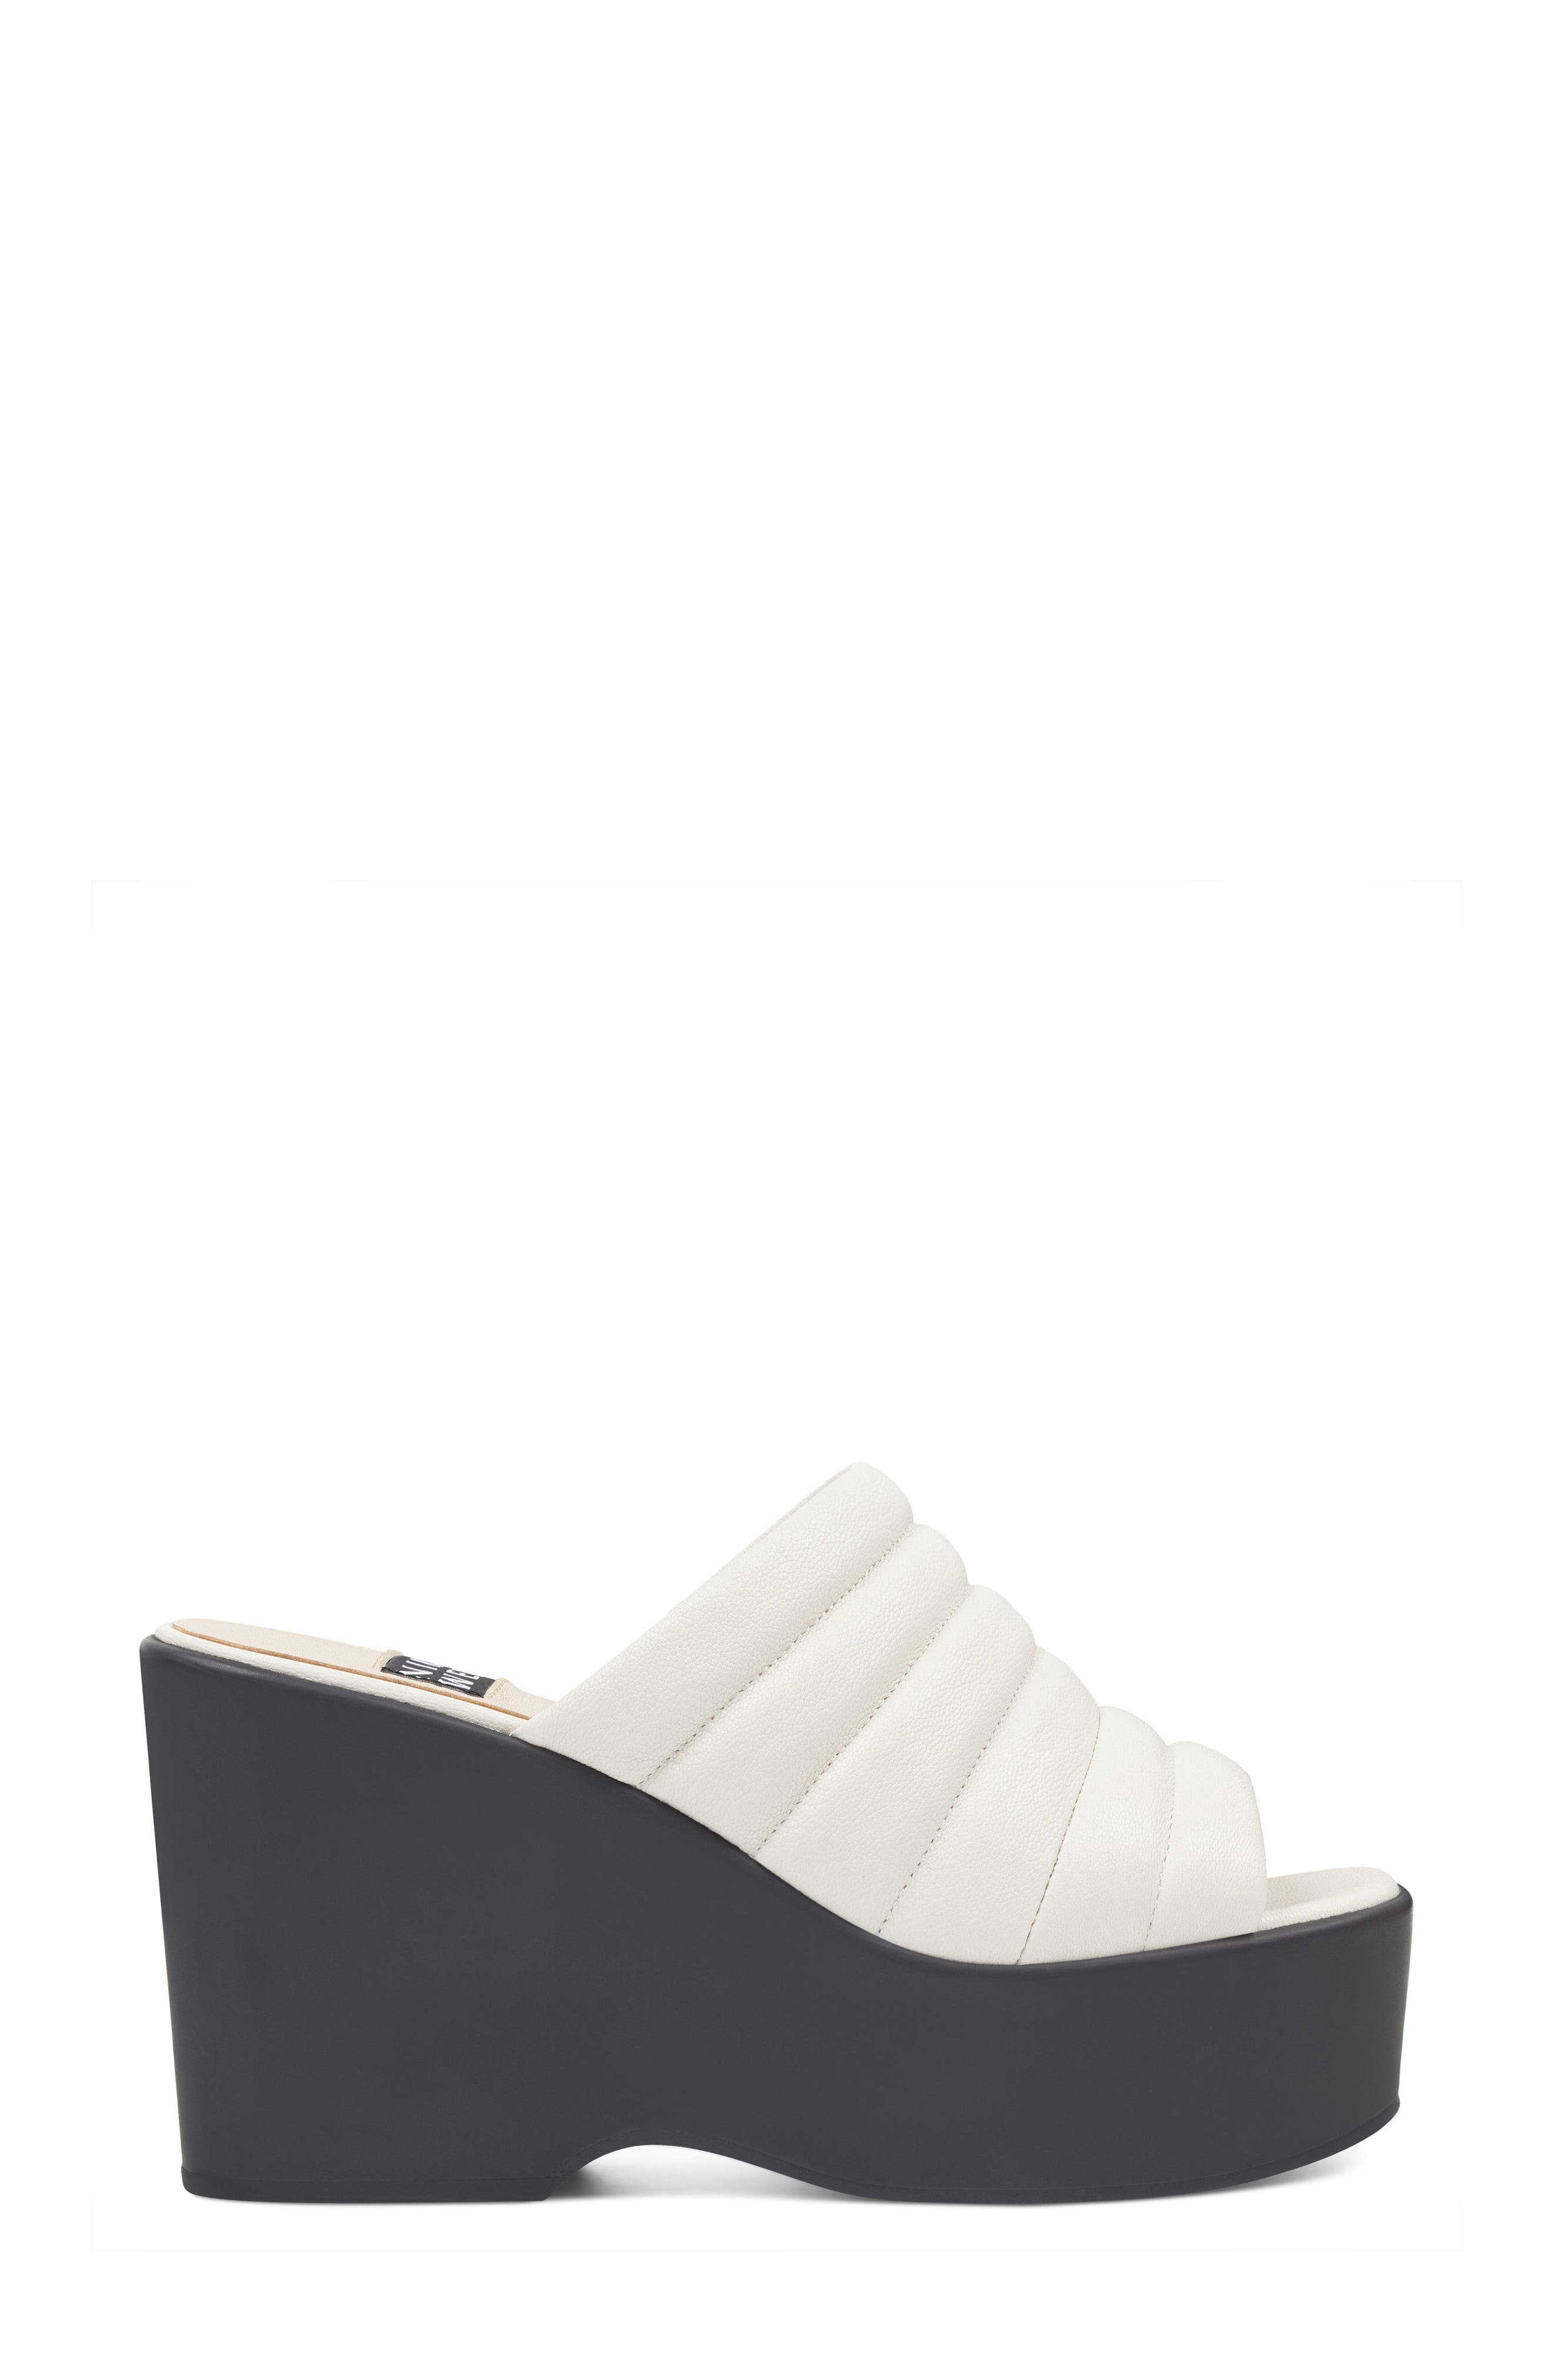 Millie - 40th Anniversary Capsule Collection Platform Wedge,                             Alternate thumbnail 3, color,                             Off White Leather